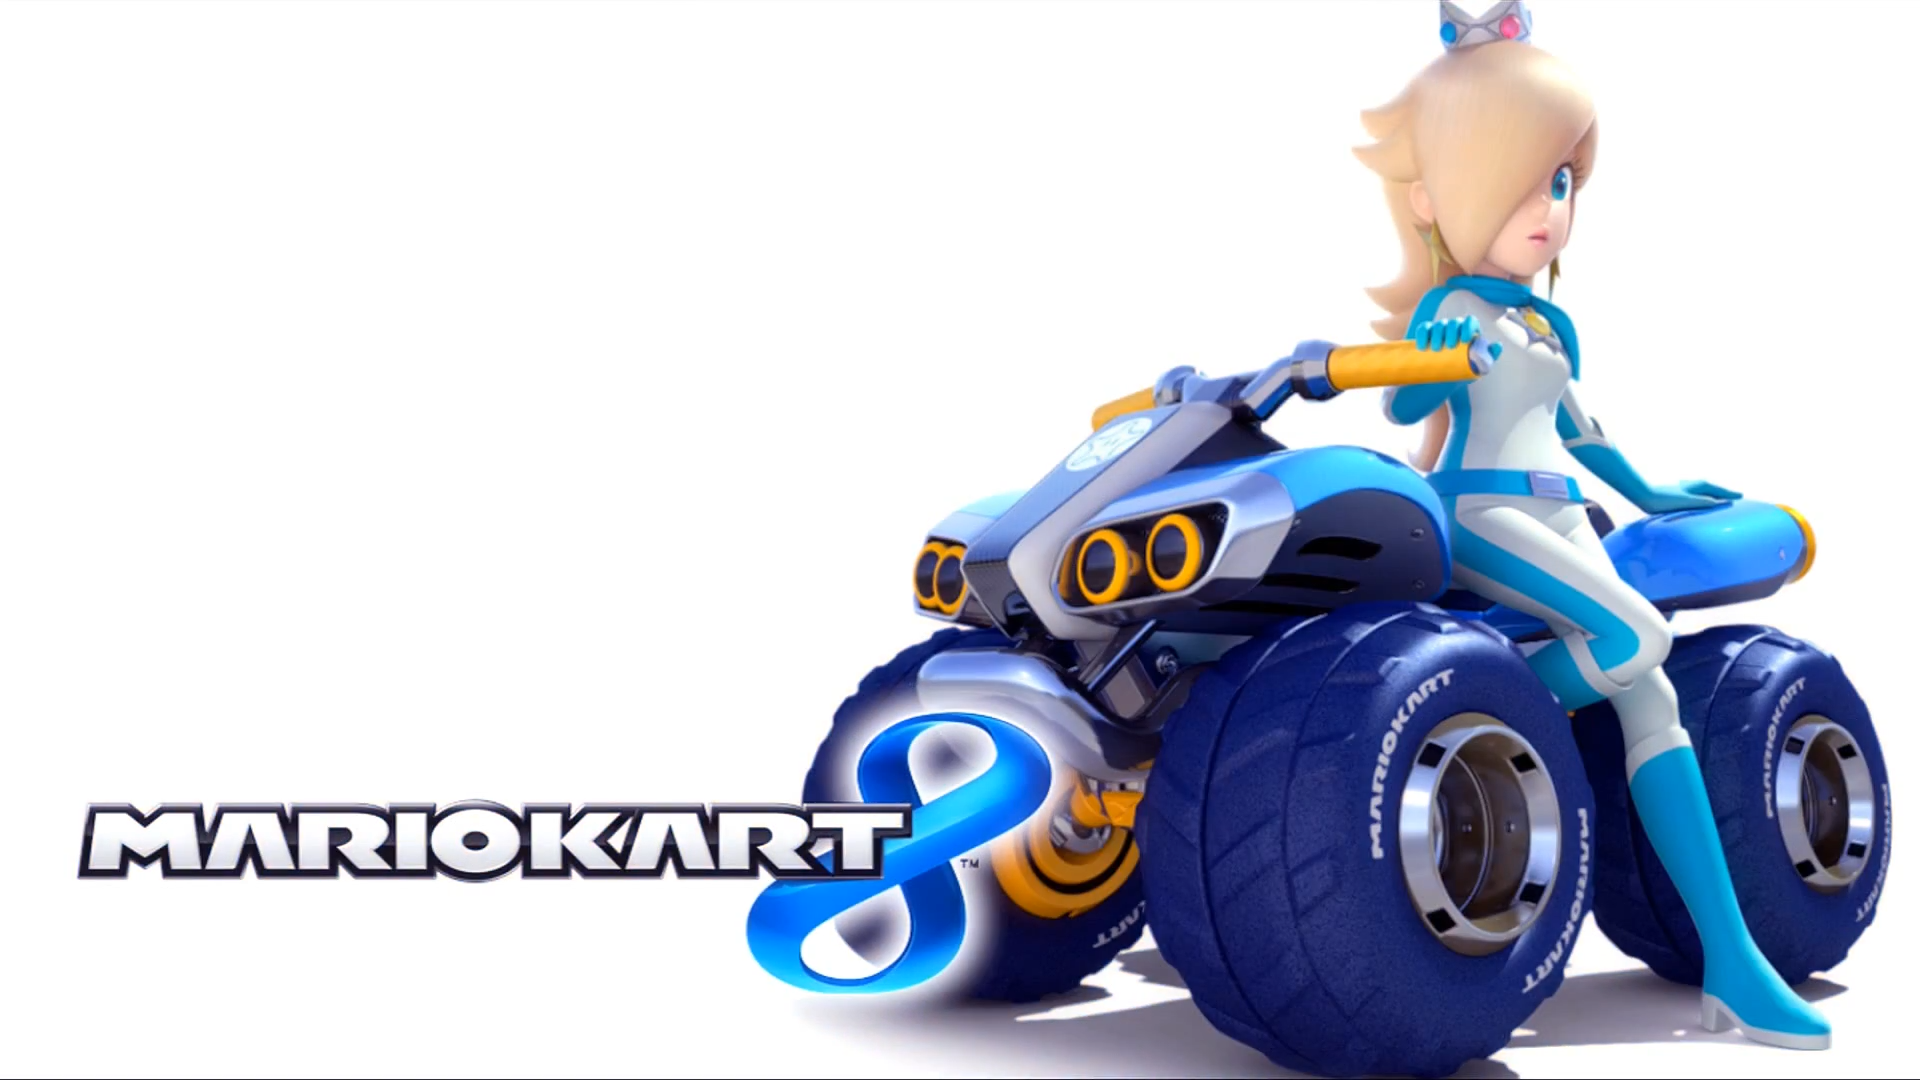 image mario kart 8 title screen rosalina png mariowiki the encyclopedia of everything mario. Black Bedroom Furniture Sets. Home Design Ideas